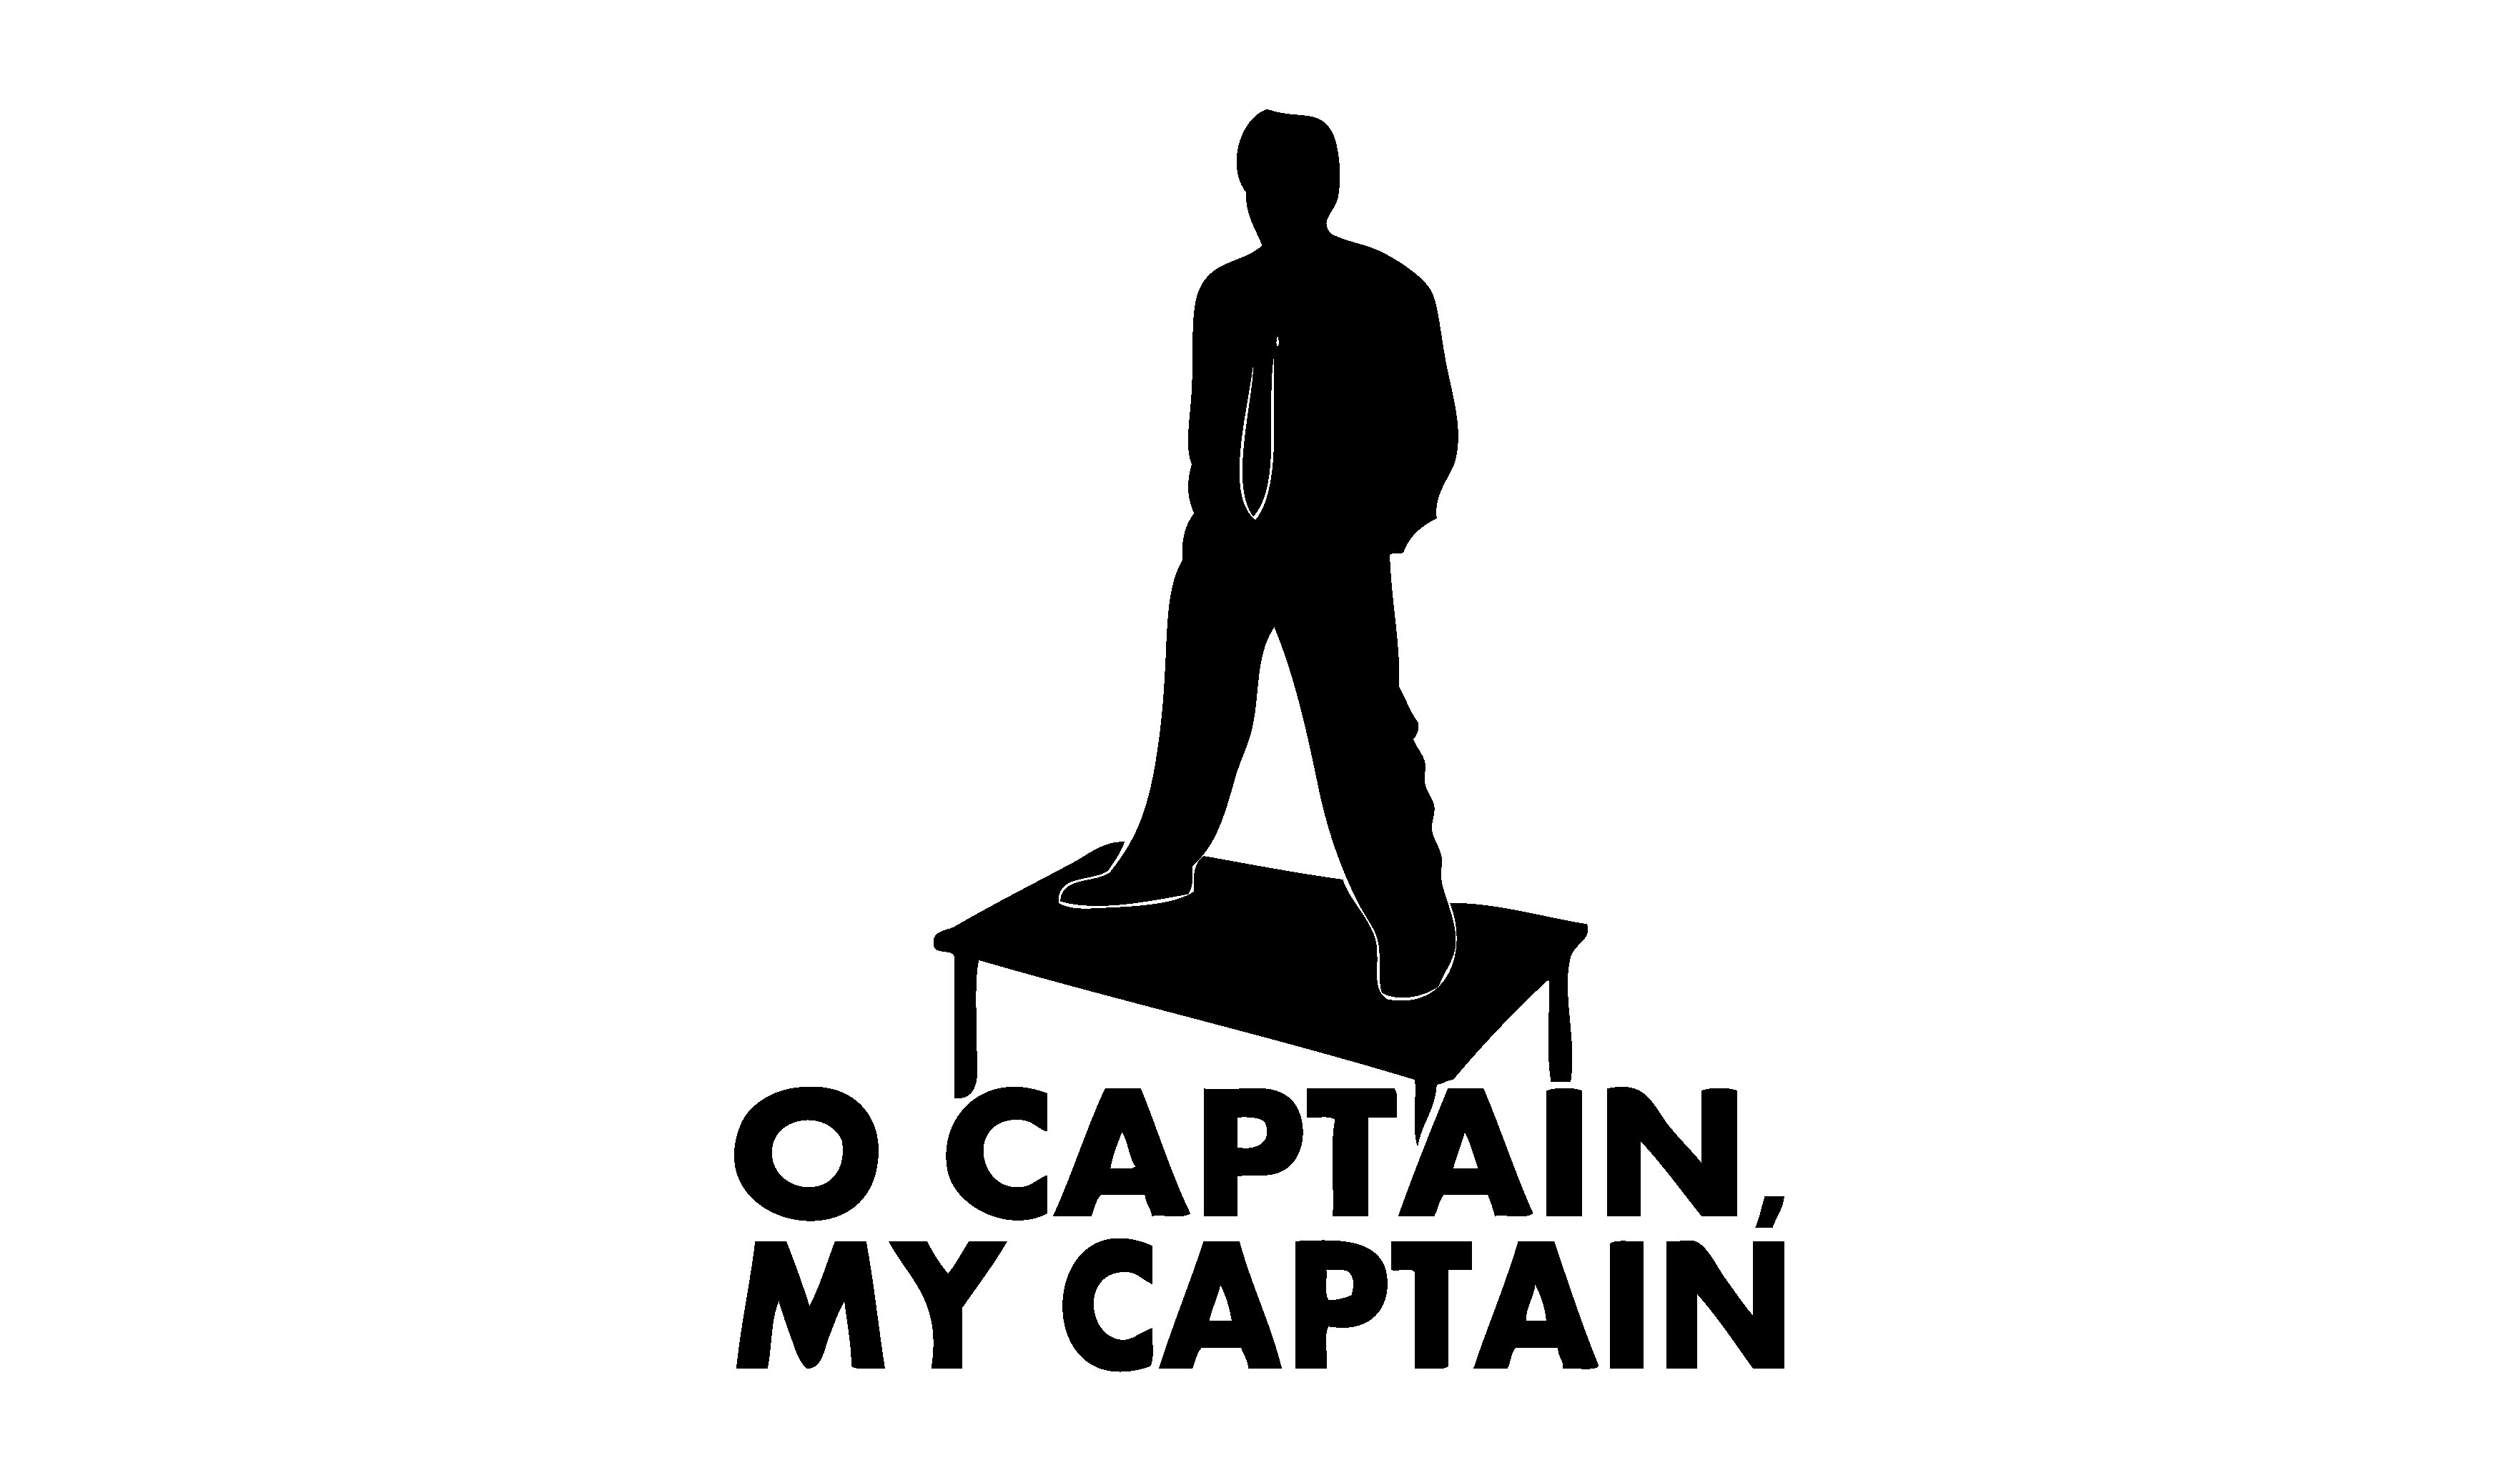 O'Captain My Captain